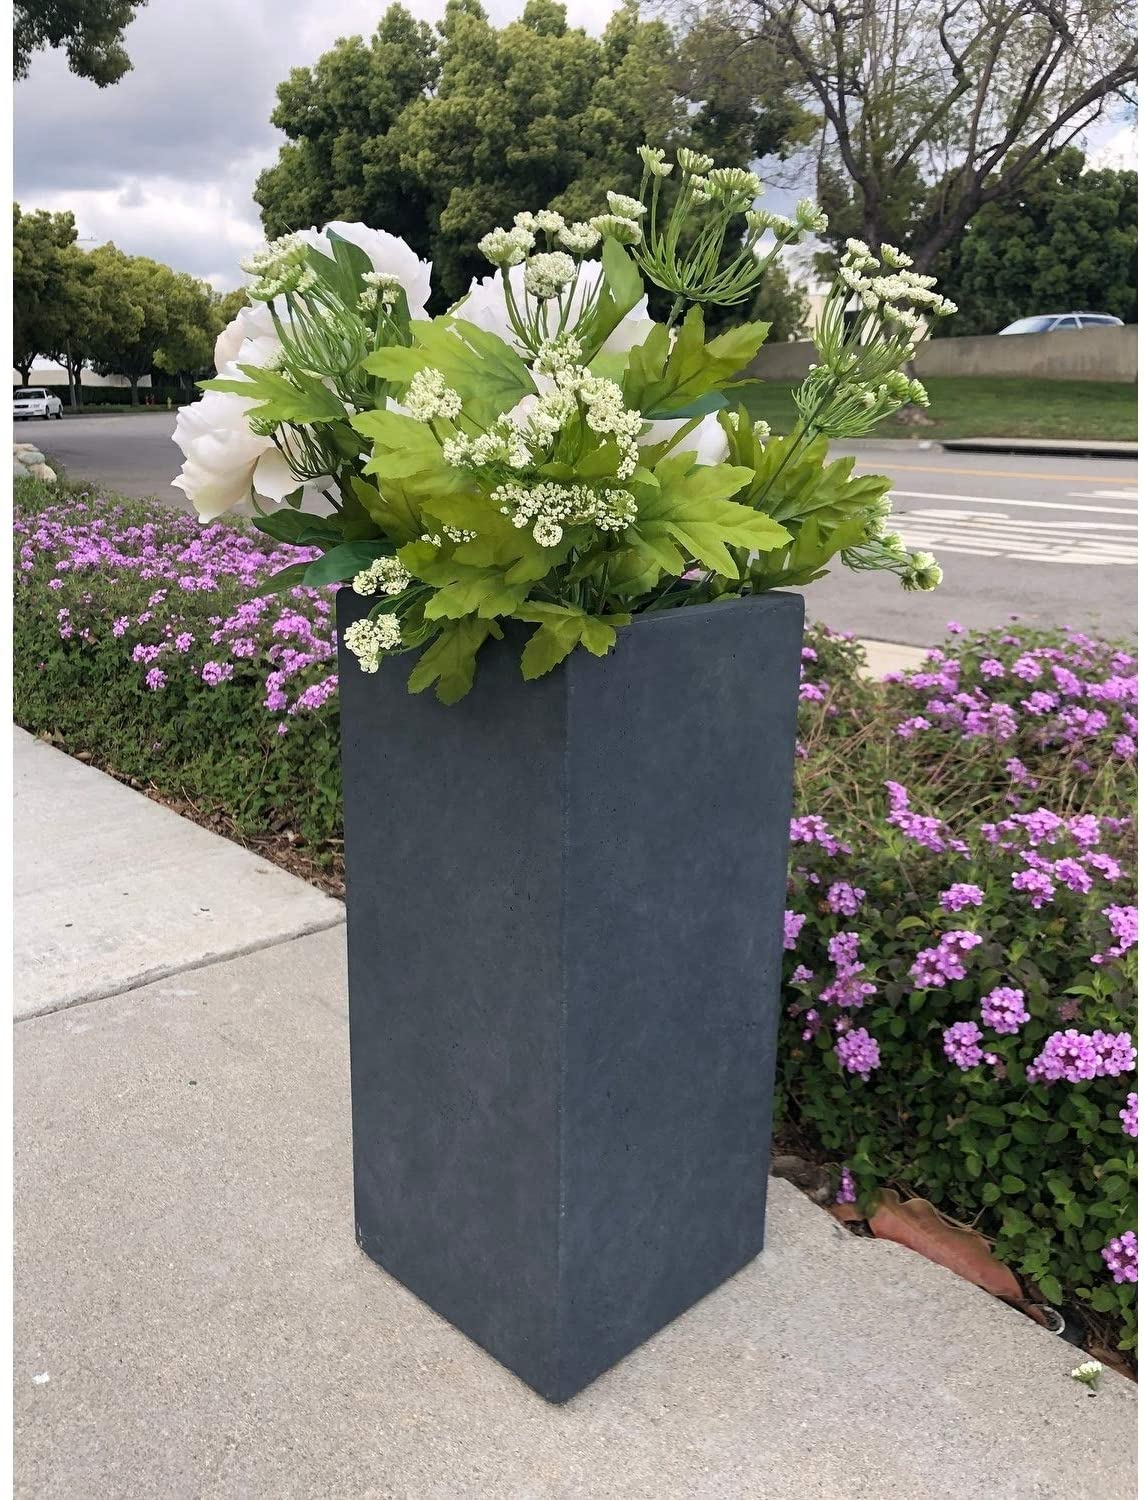 Lightweight Concrete Tall Light Granite Planter Small 8 7'x8 7'x19 9' Grey Rectangular